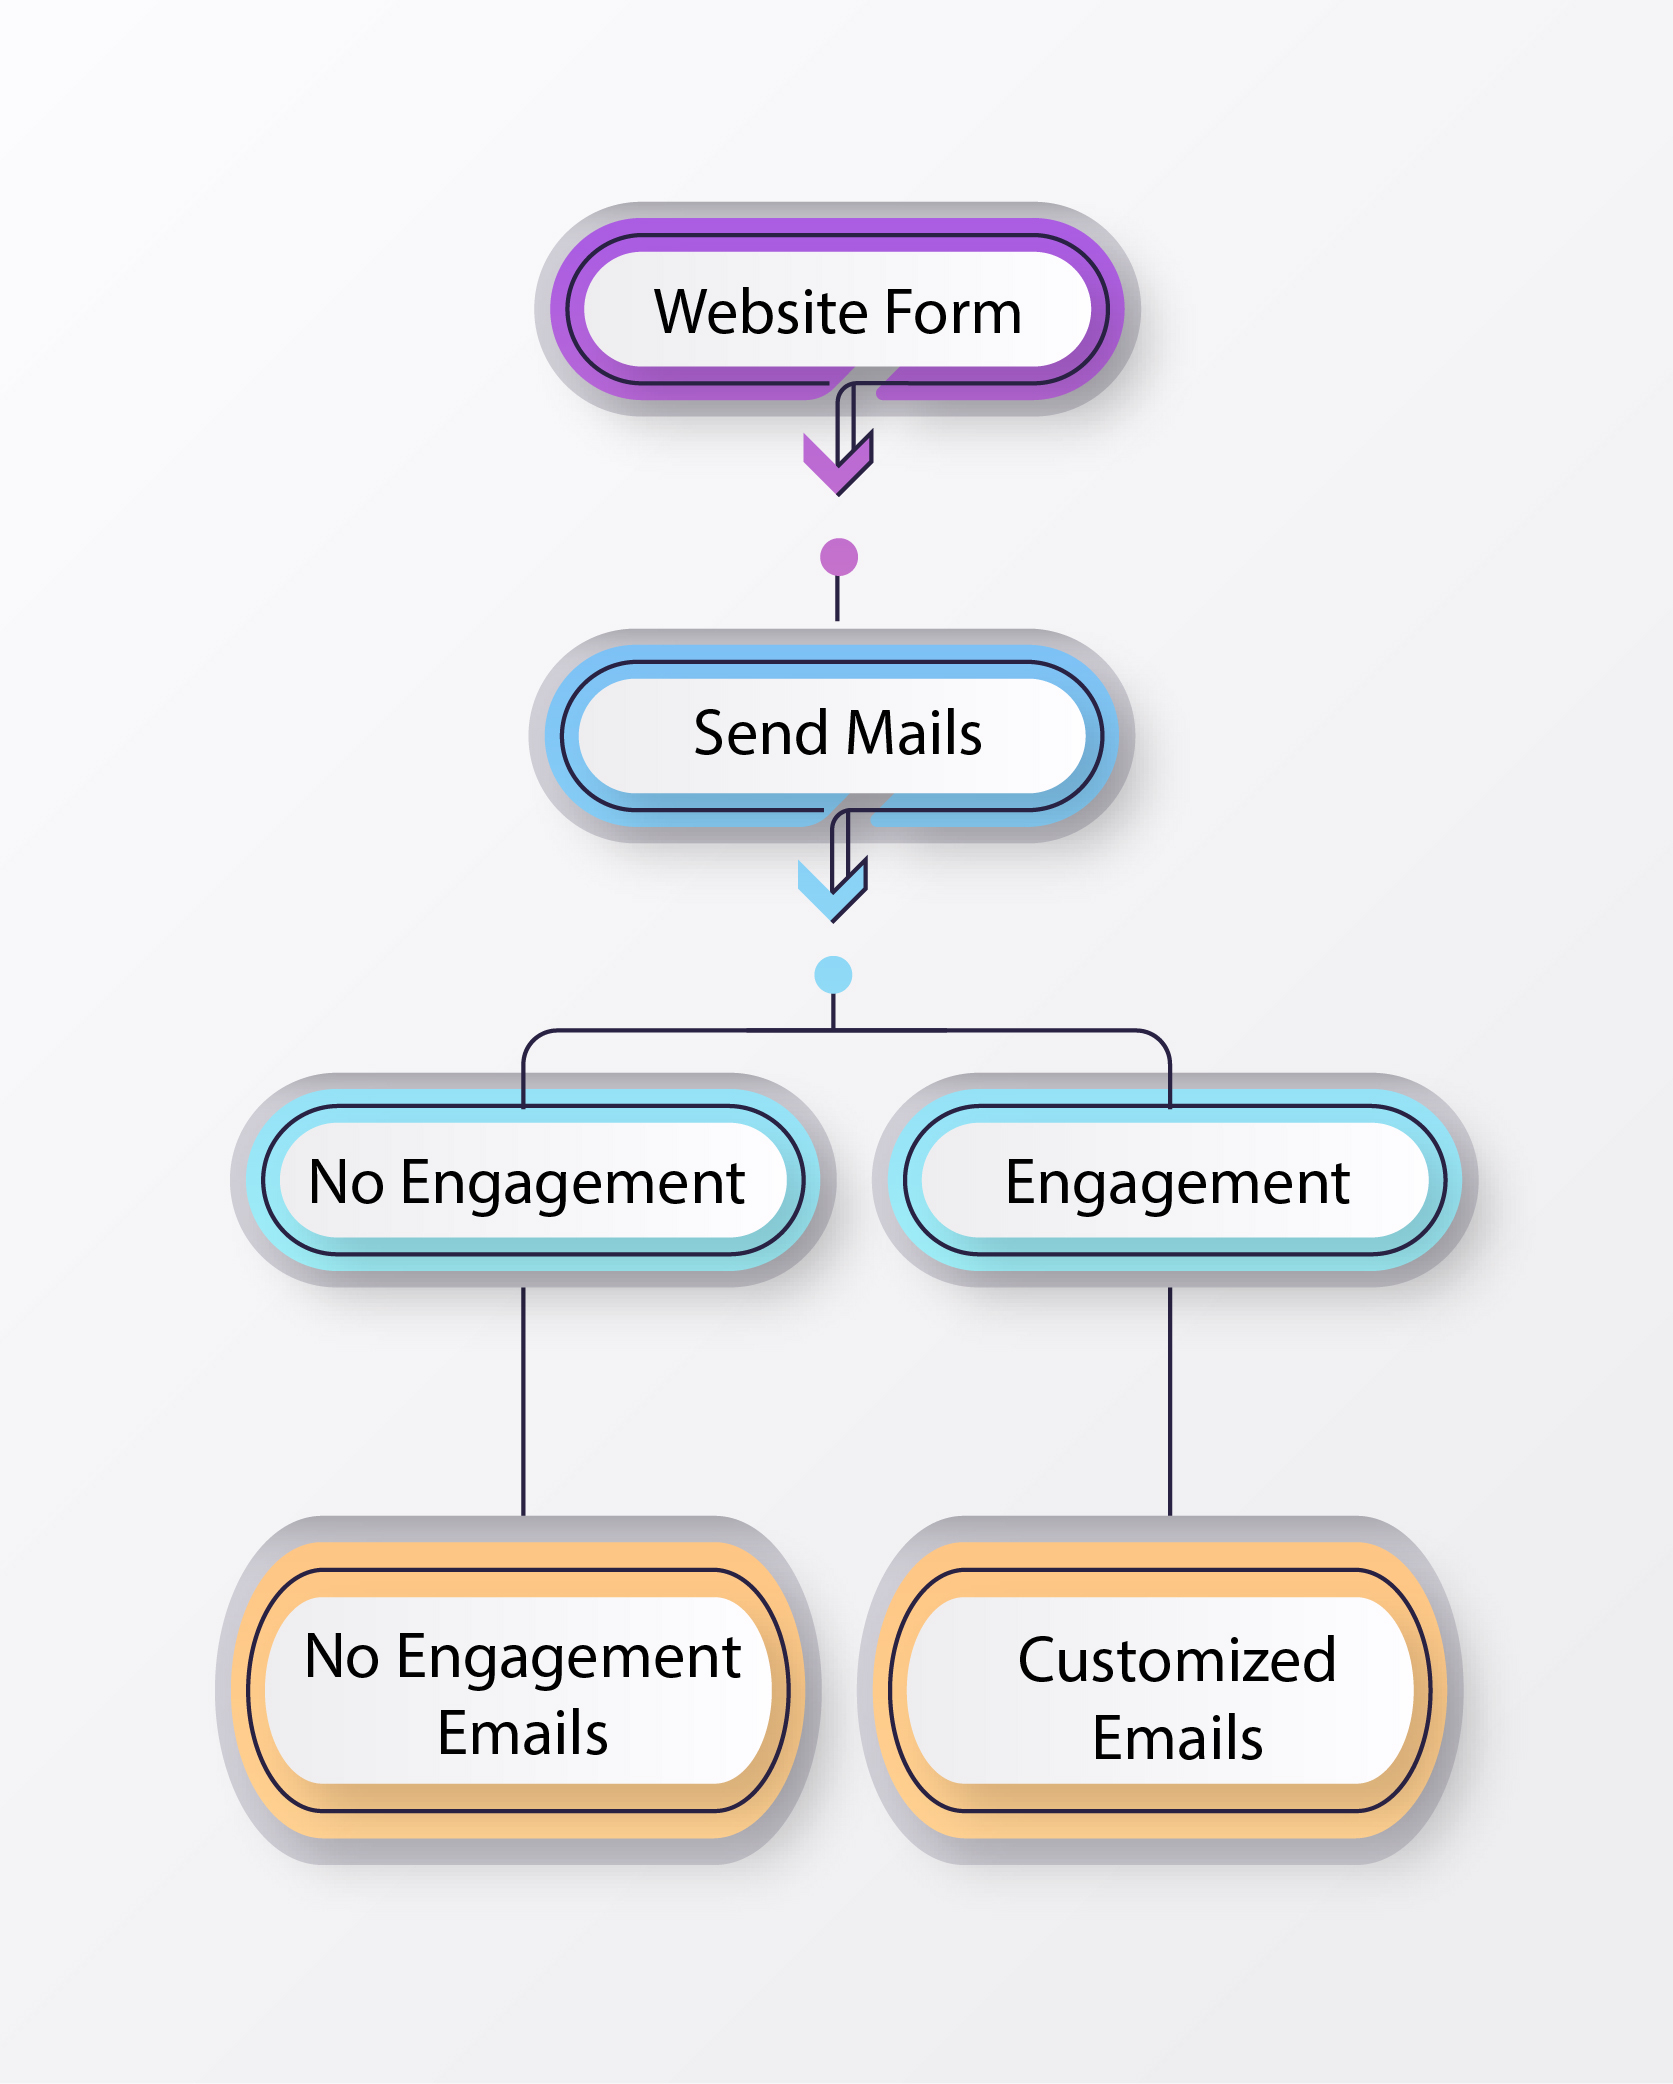 Send custom emails to prospects to nurture them better.